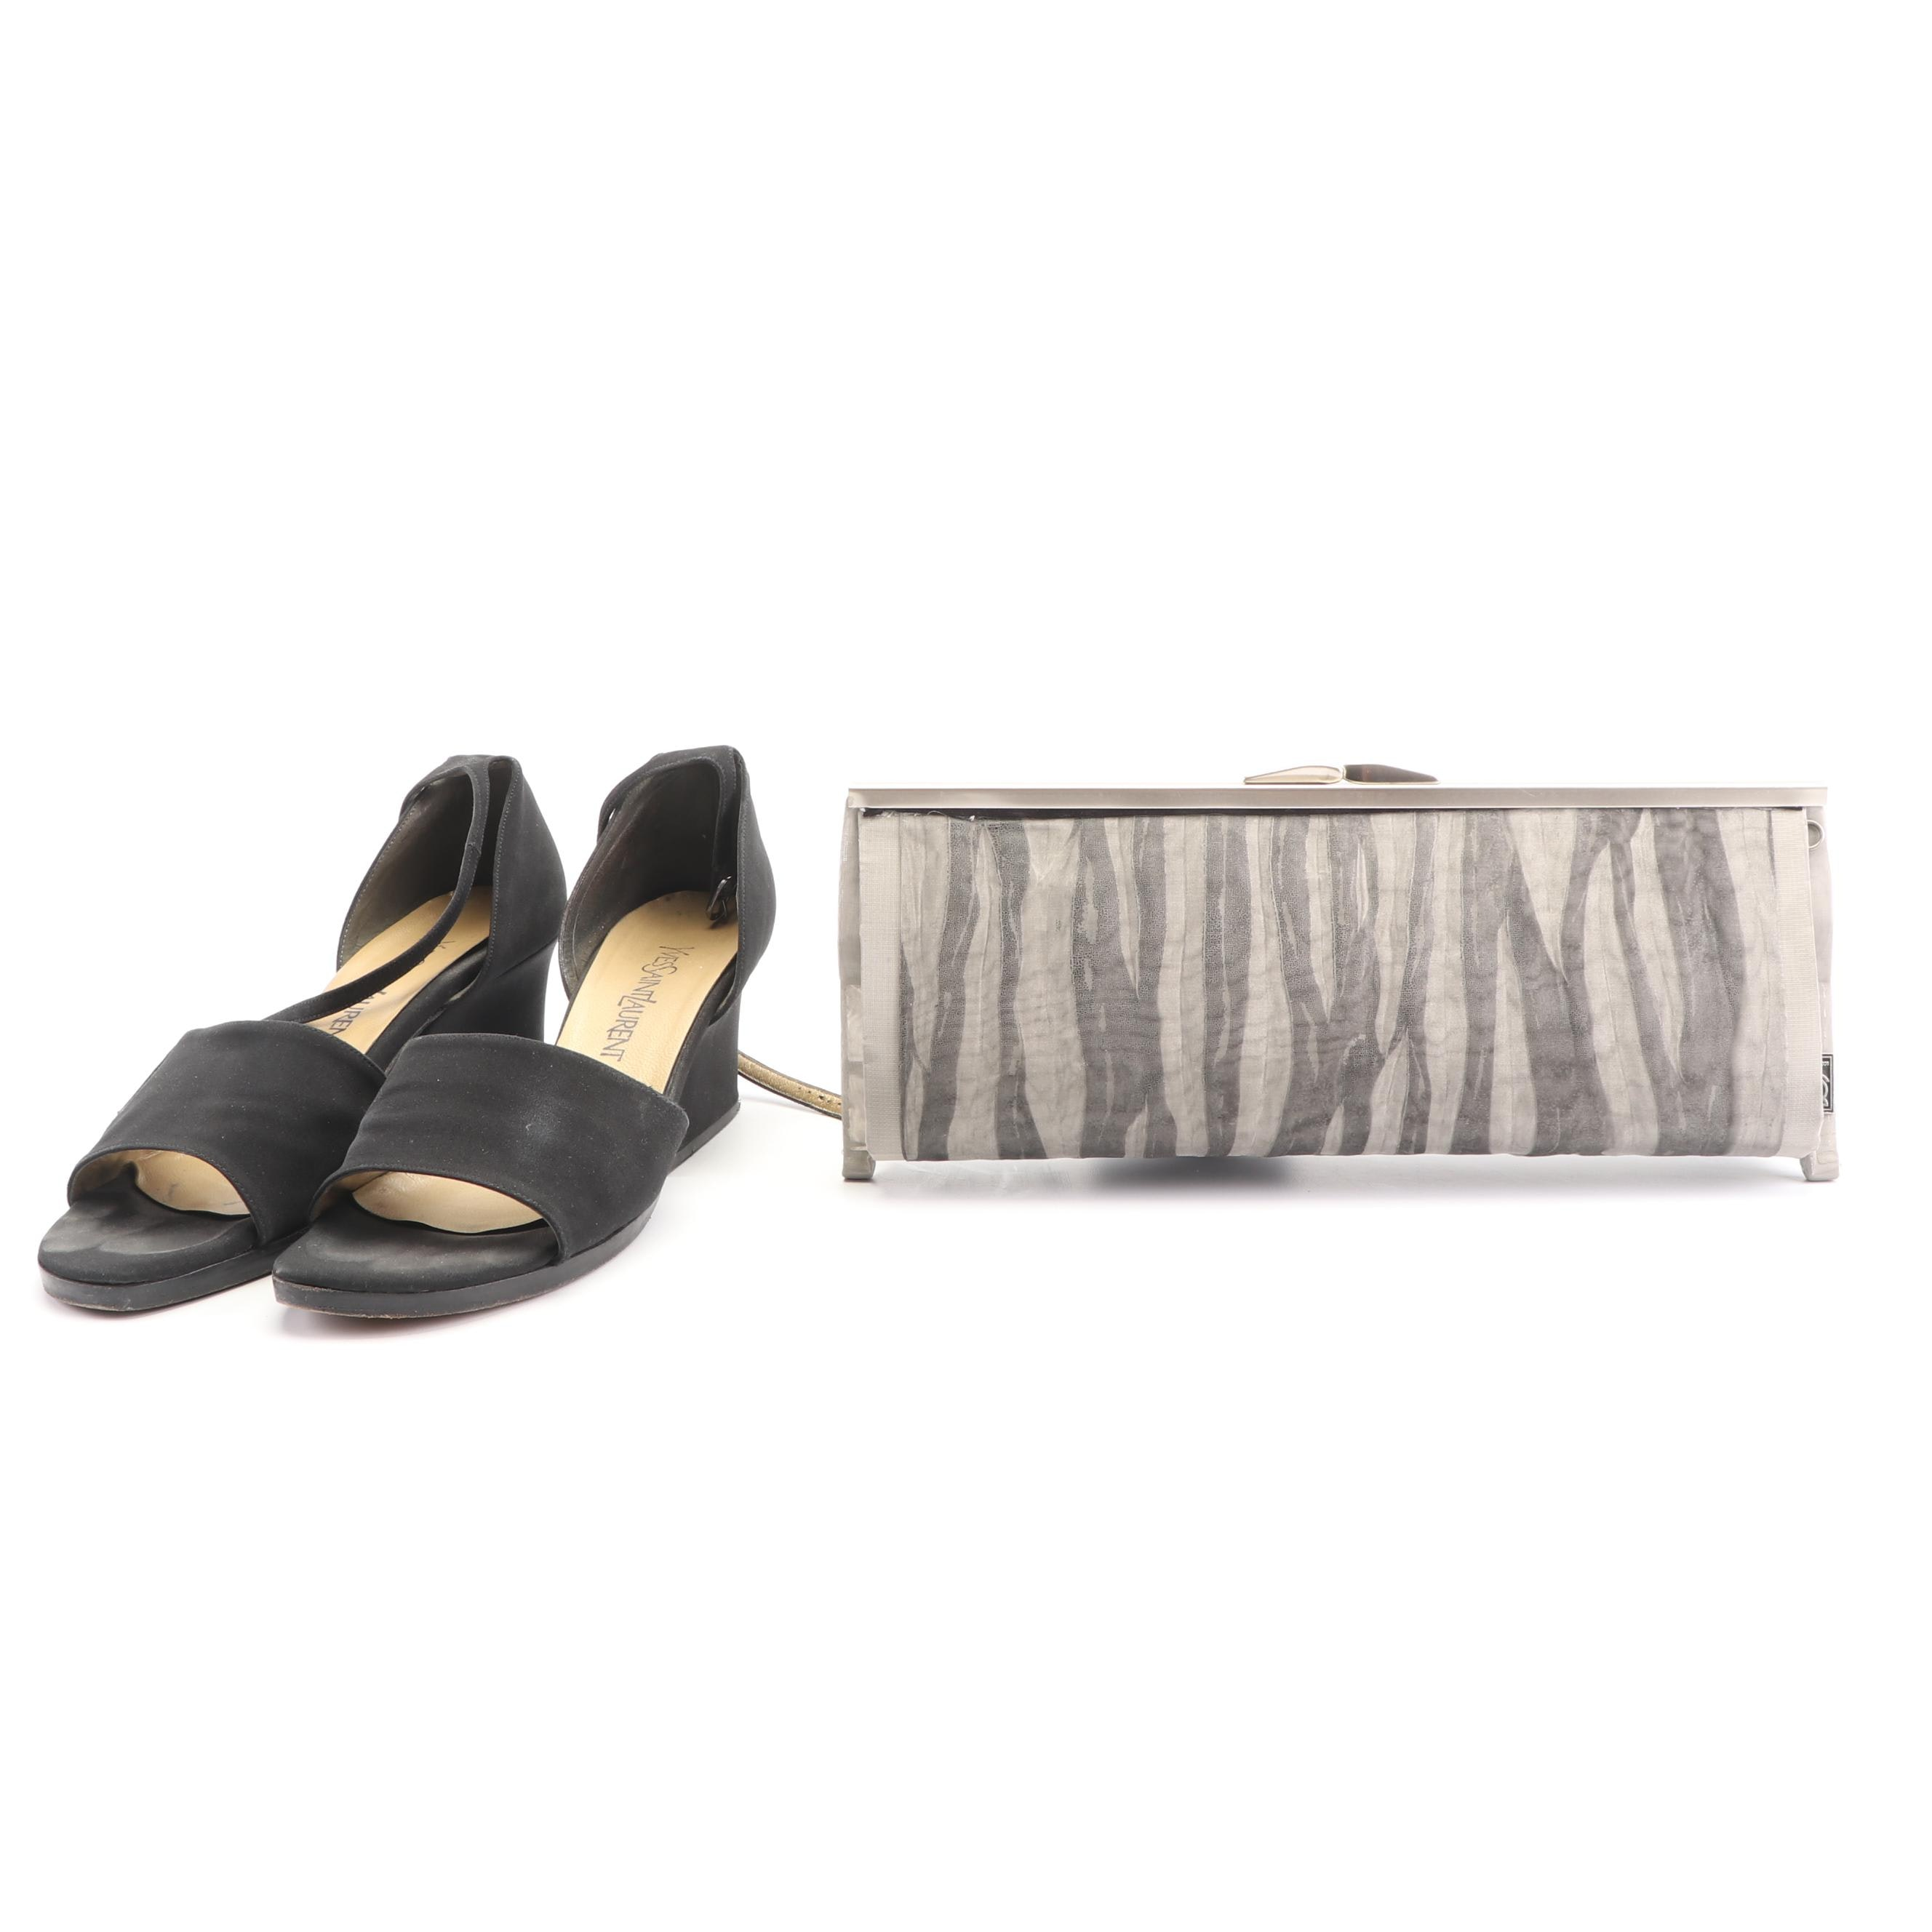 Yves Saint Laurent Black Wedge Sandals with Bo's Art Clutch of Los Angeles